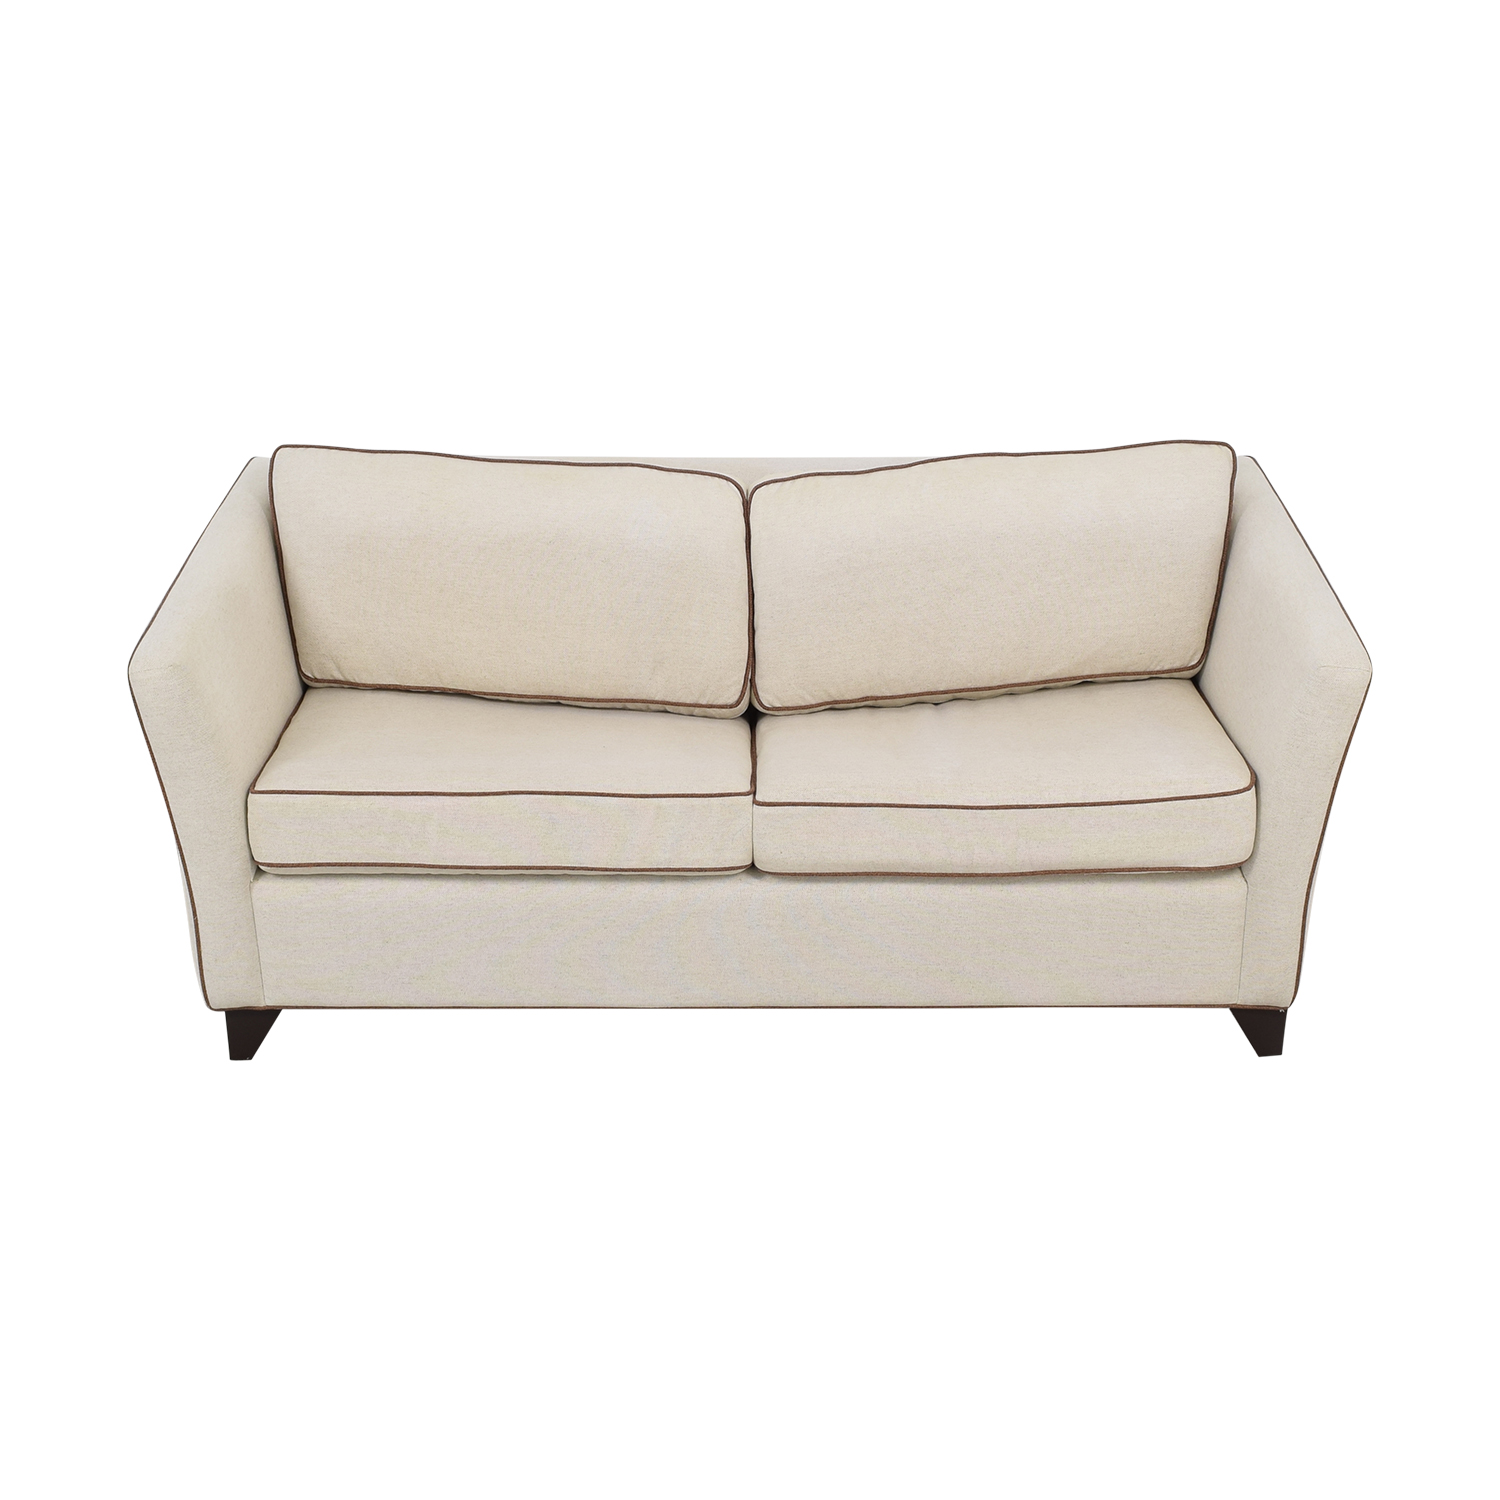 Carlyle Carlyle Sandy Sofa Bed ct